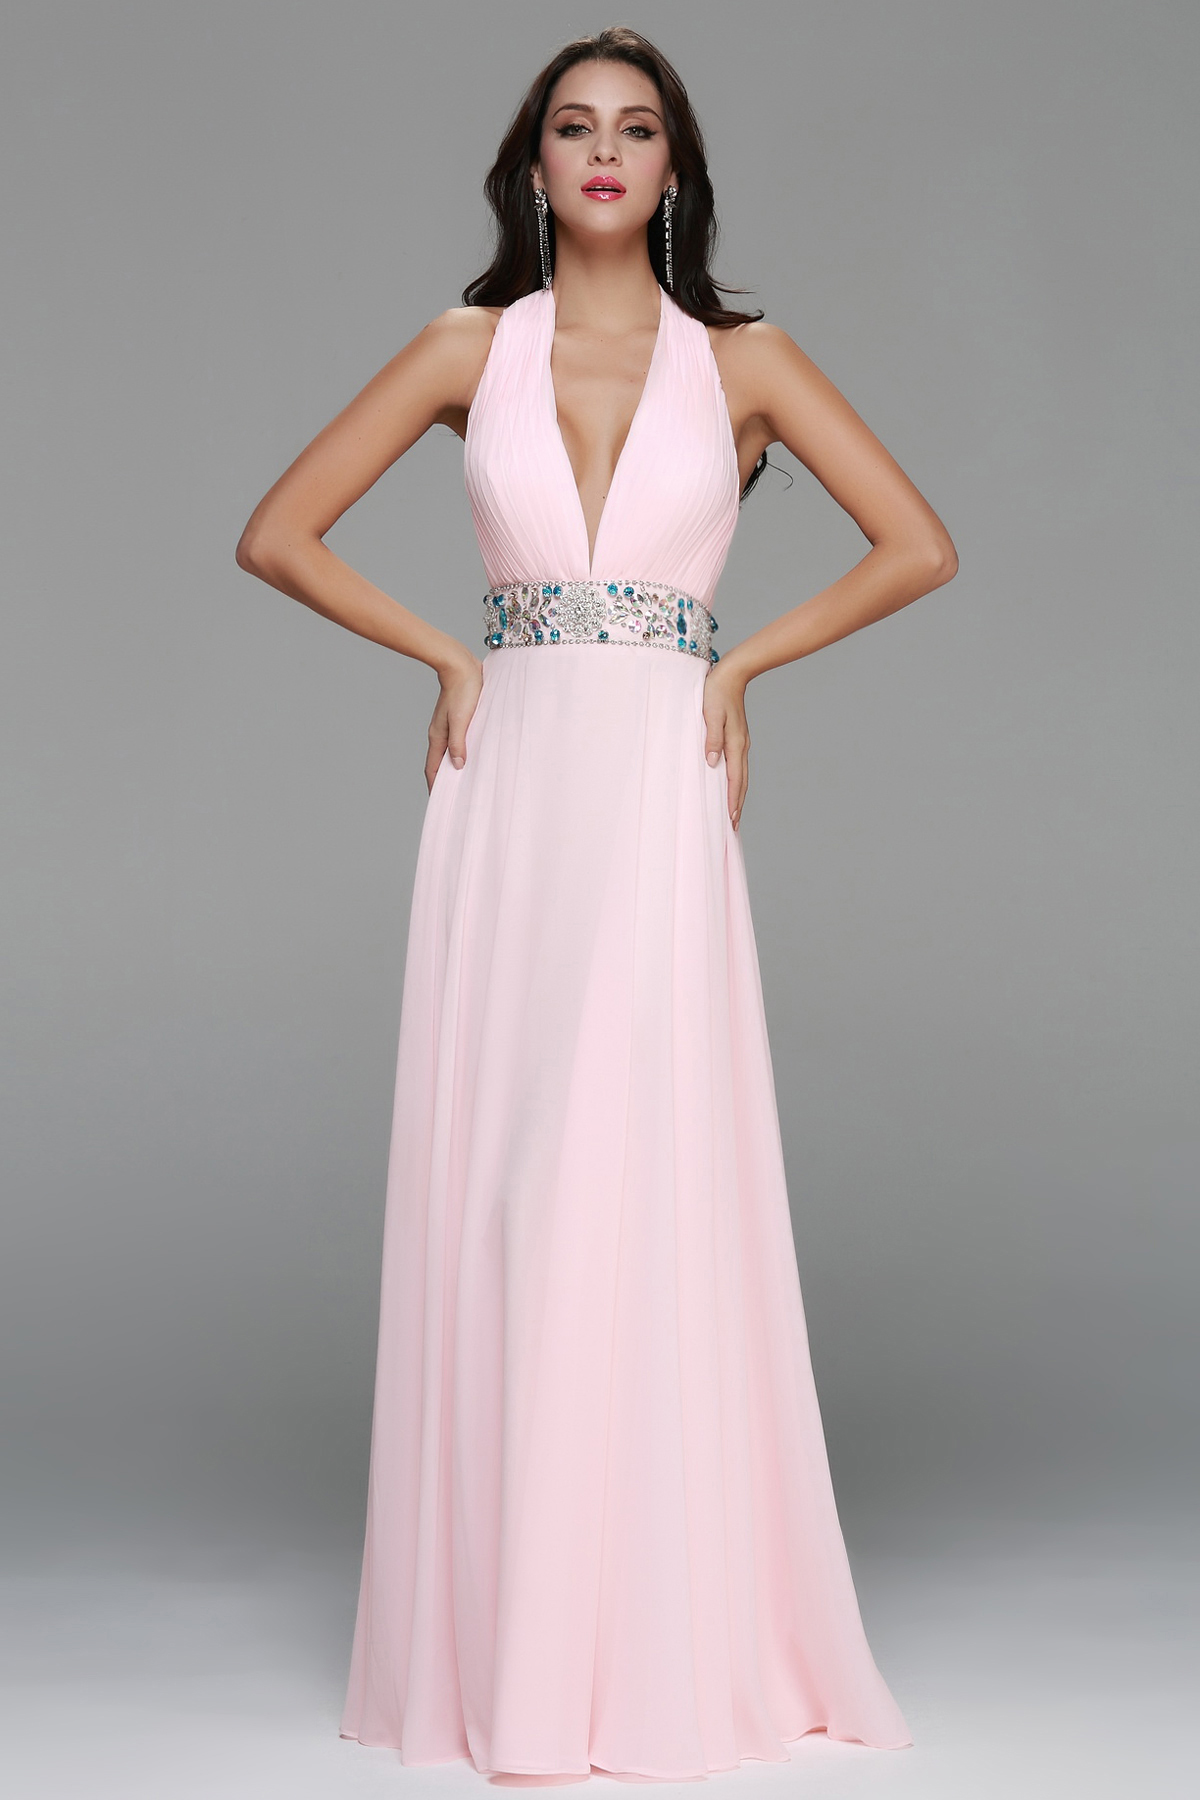 Deep V Neck Halter Long Pale Pink Chiffon Prom Dress with Beading